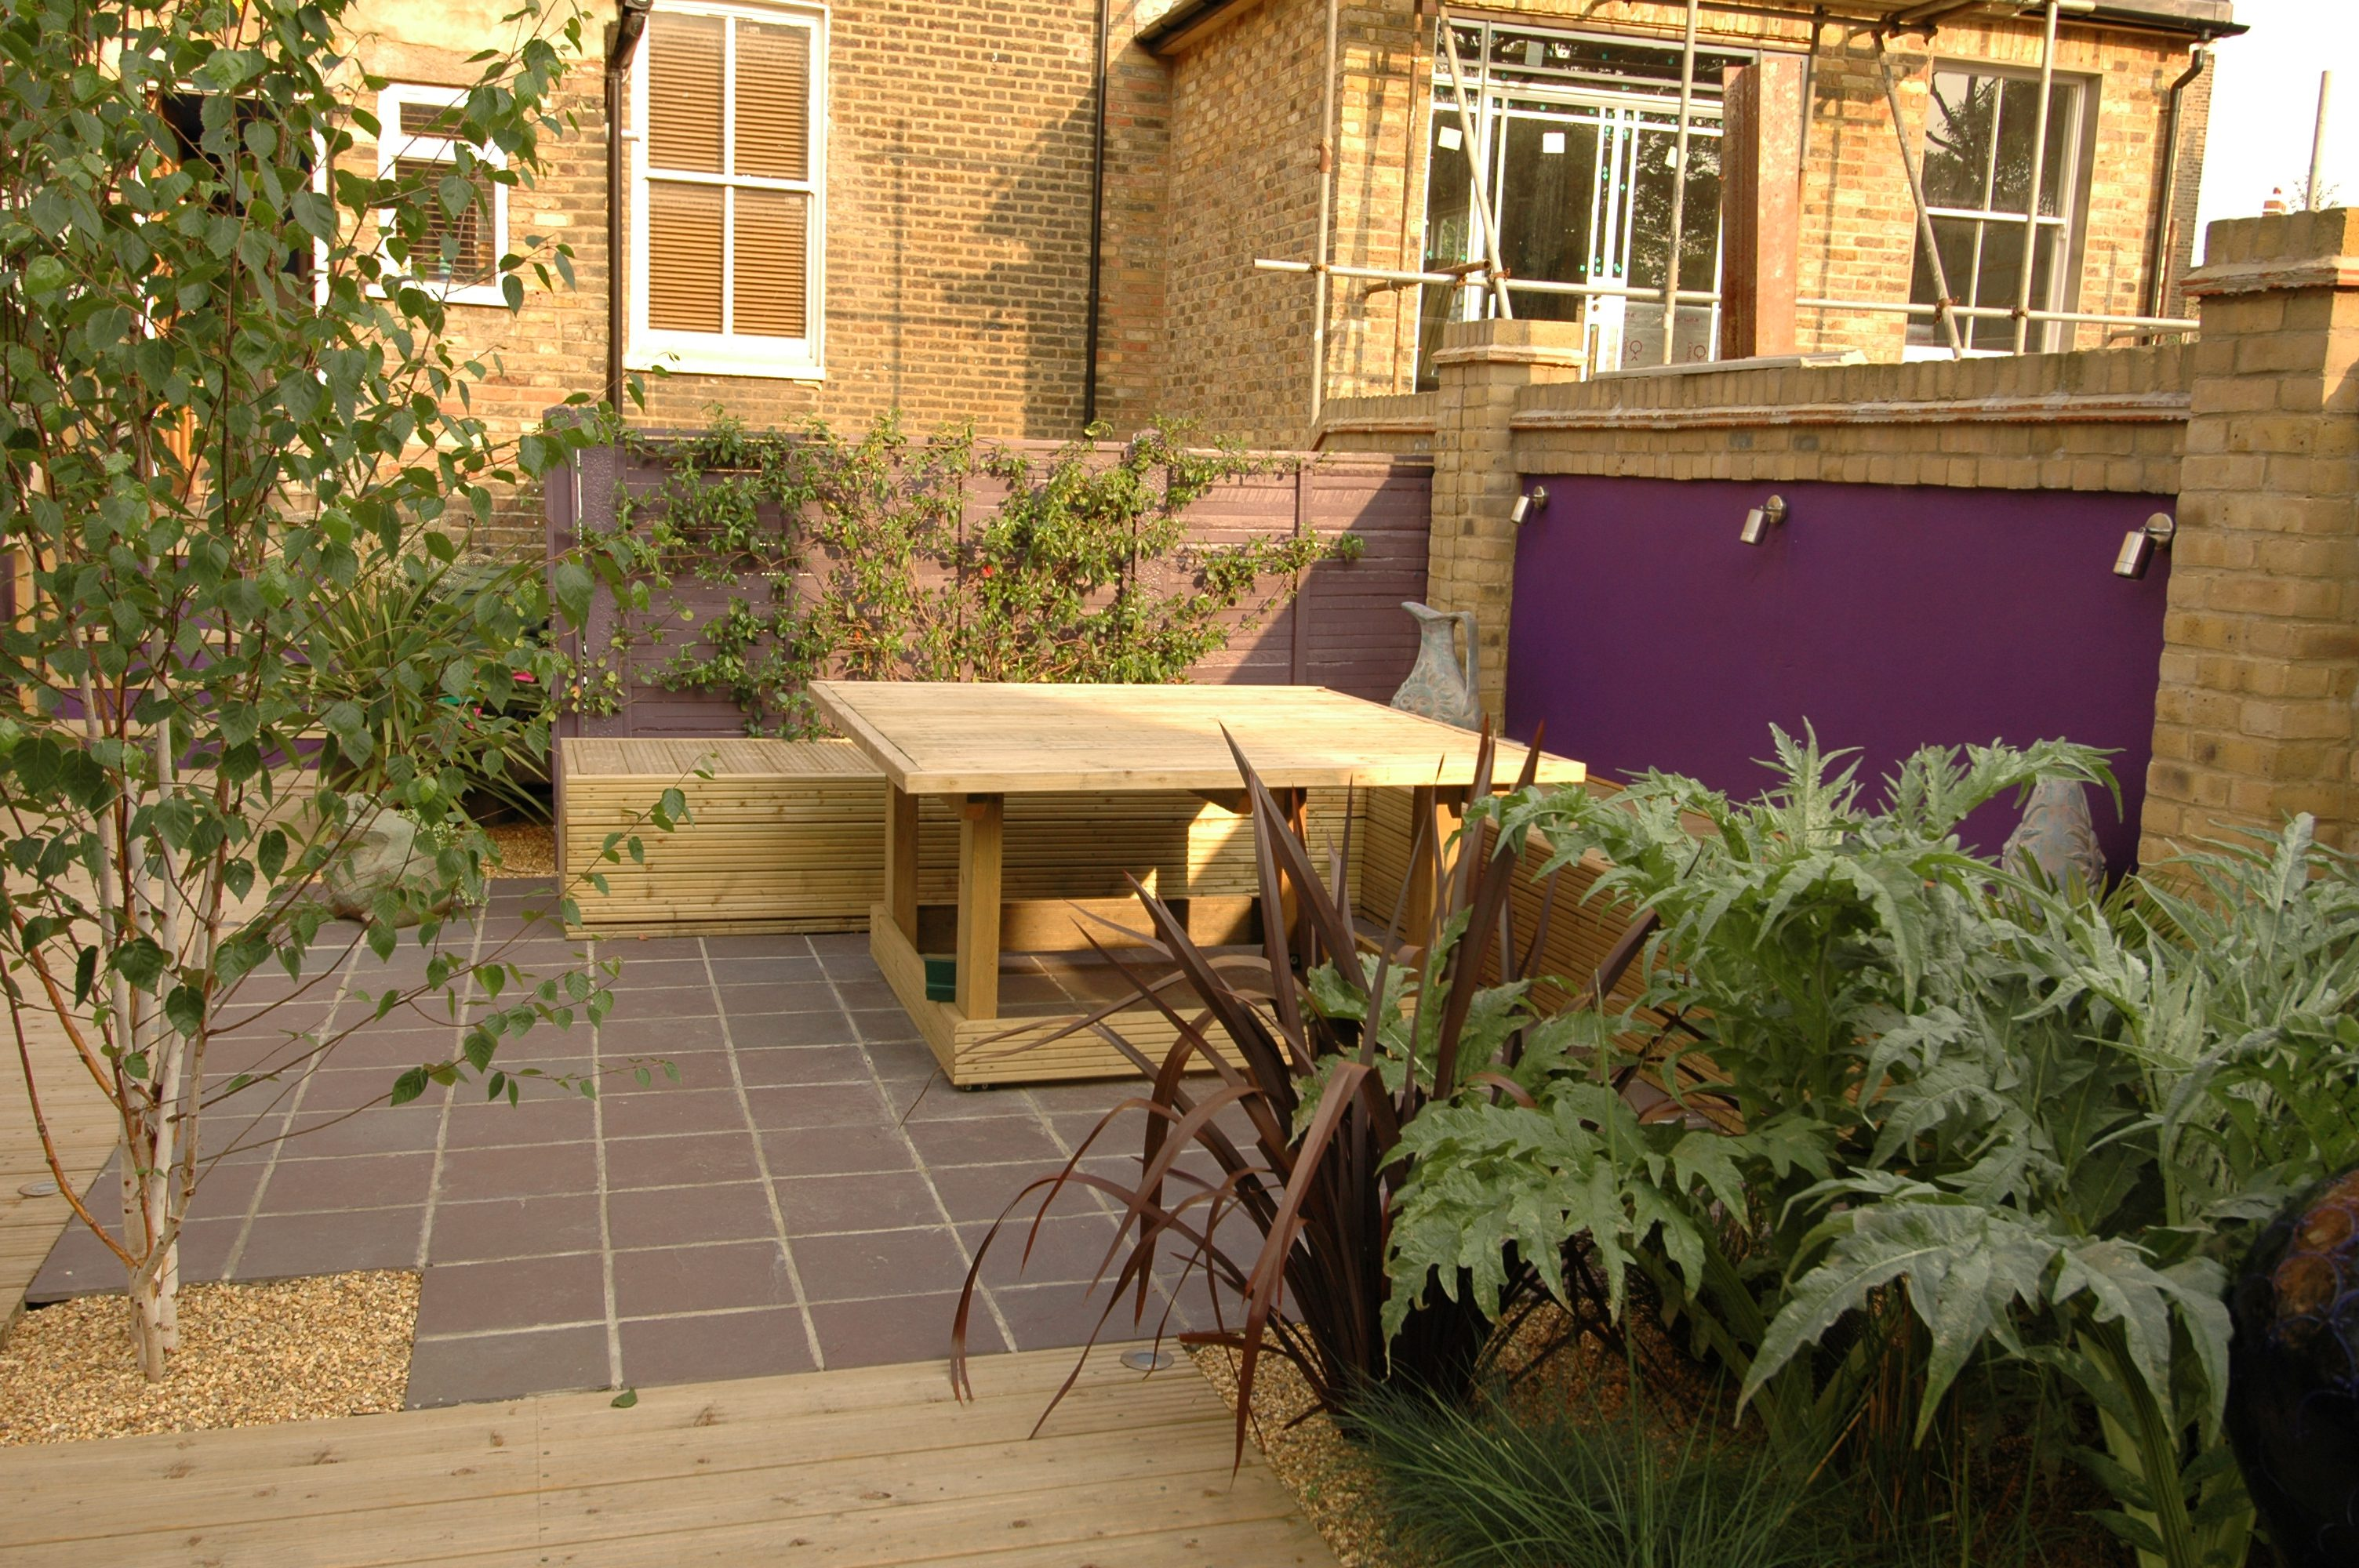 Blog - Page 73 of 73 - Earth Designs Garden Design and Build